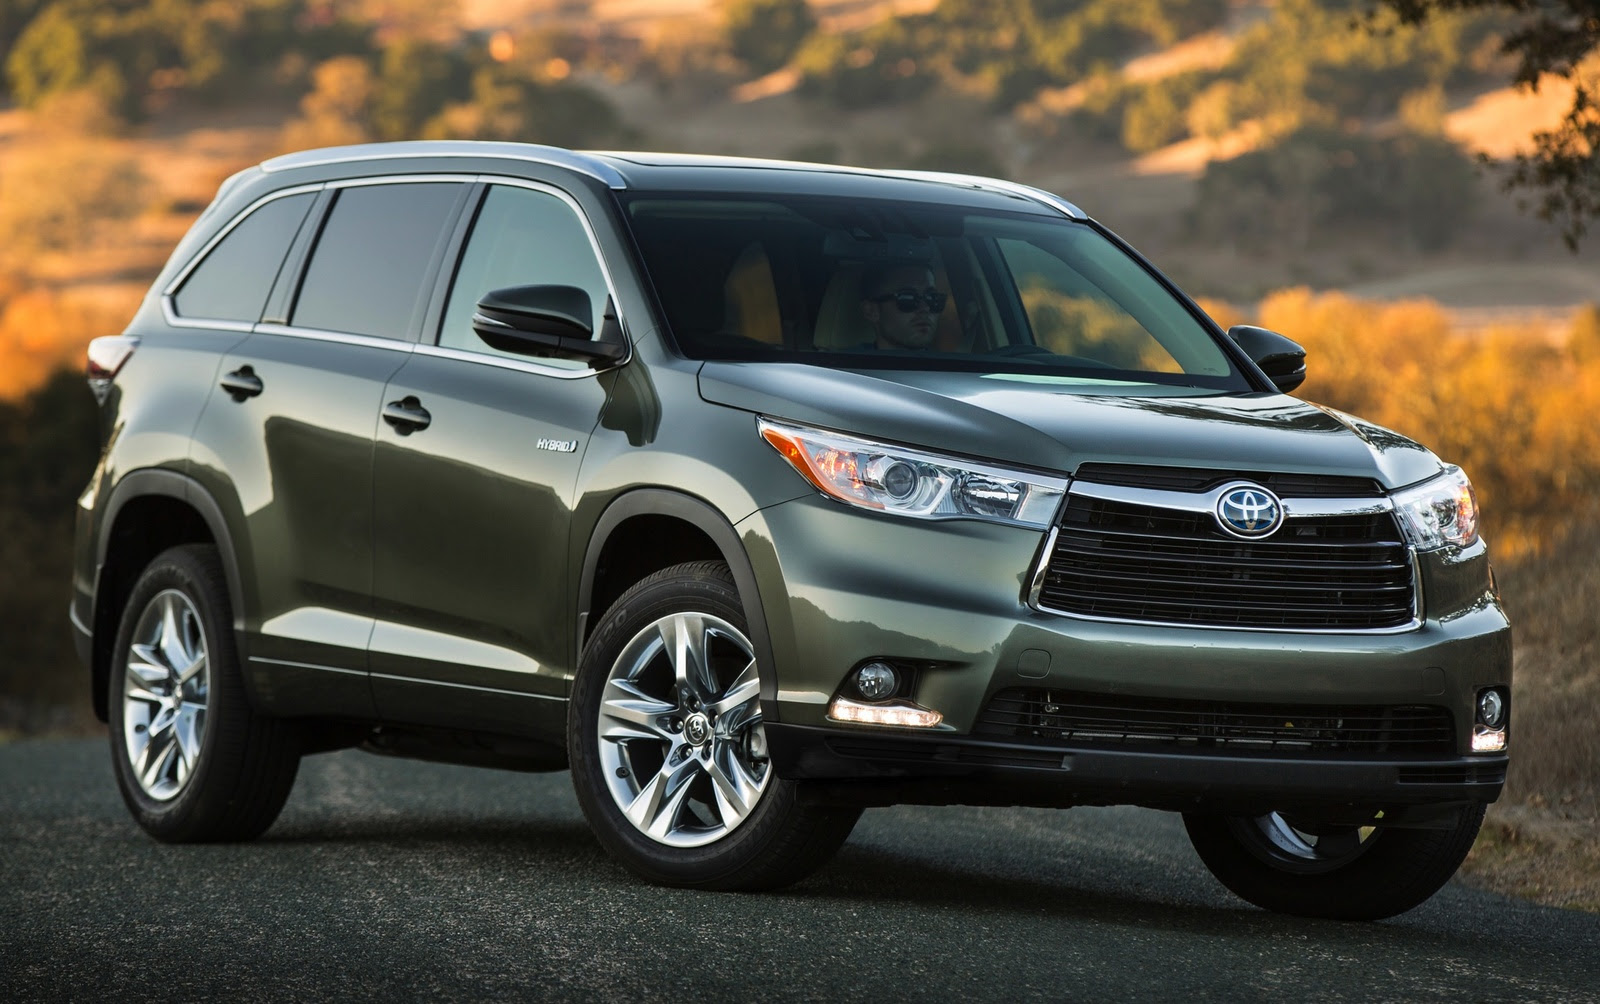 2015 Toyota Highlander Hybrid - Review - CarGurus